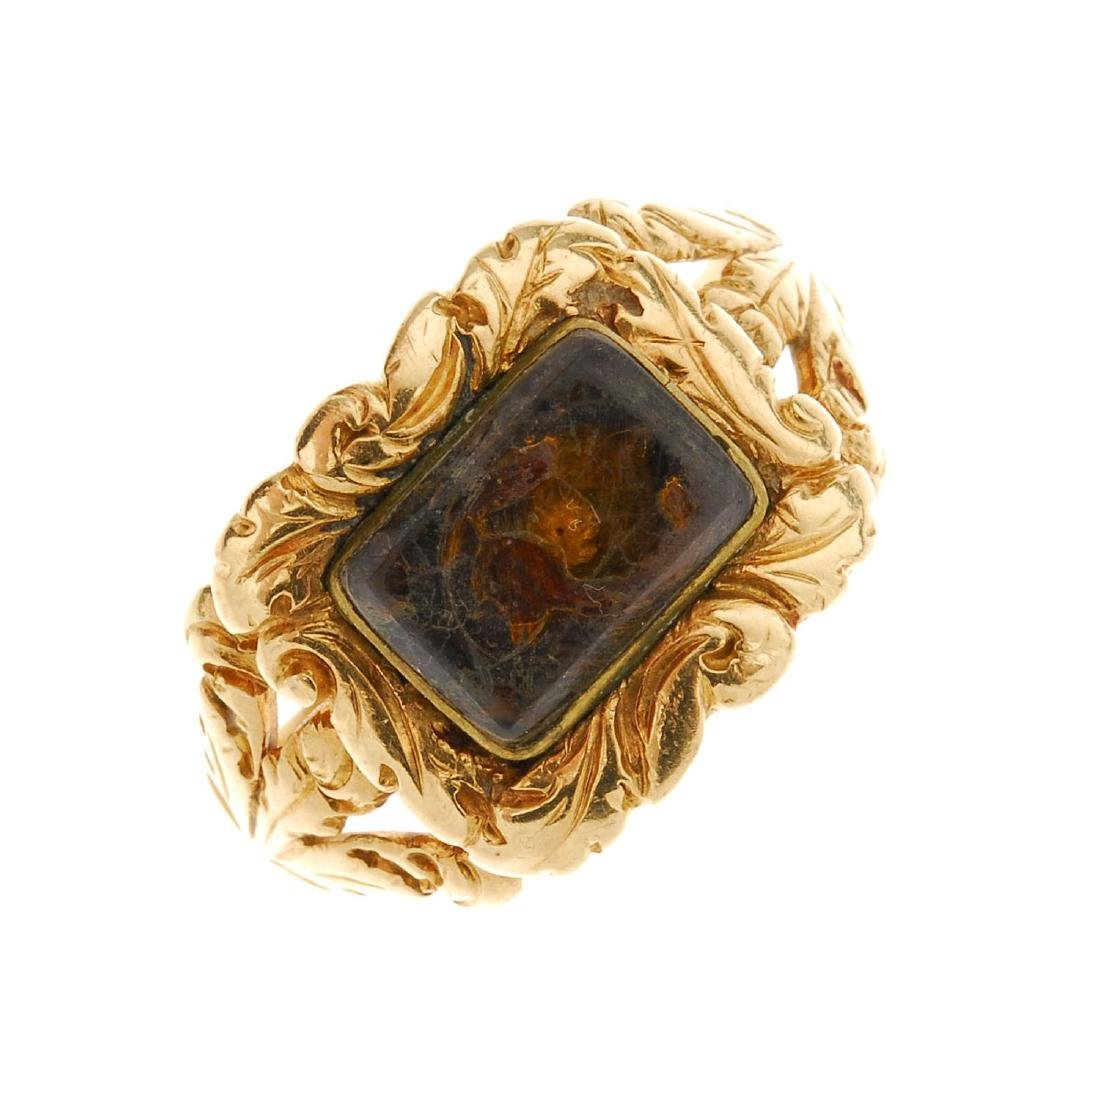 A late Georgian 18ct gold memorial ring. The central